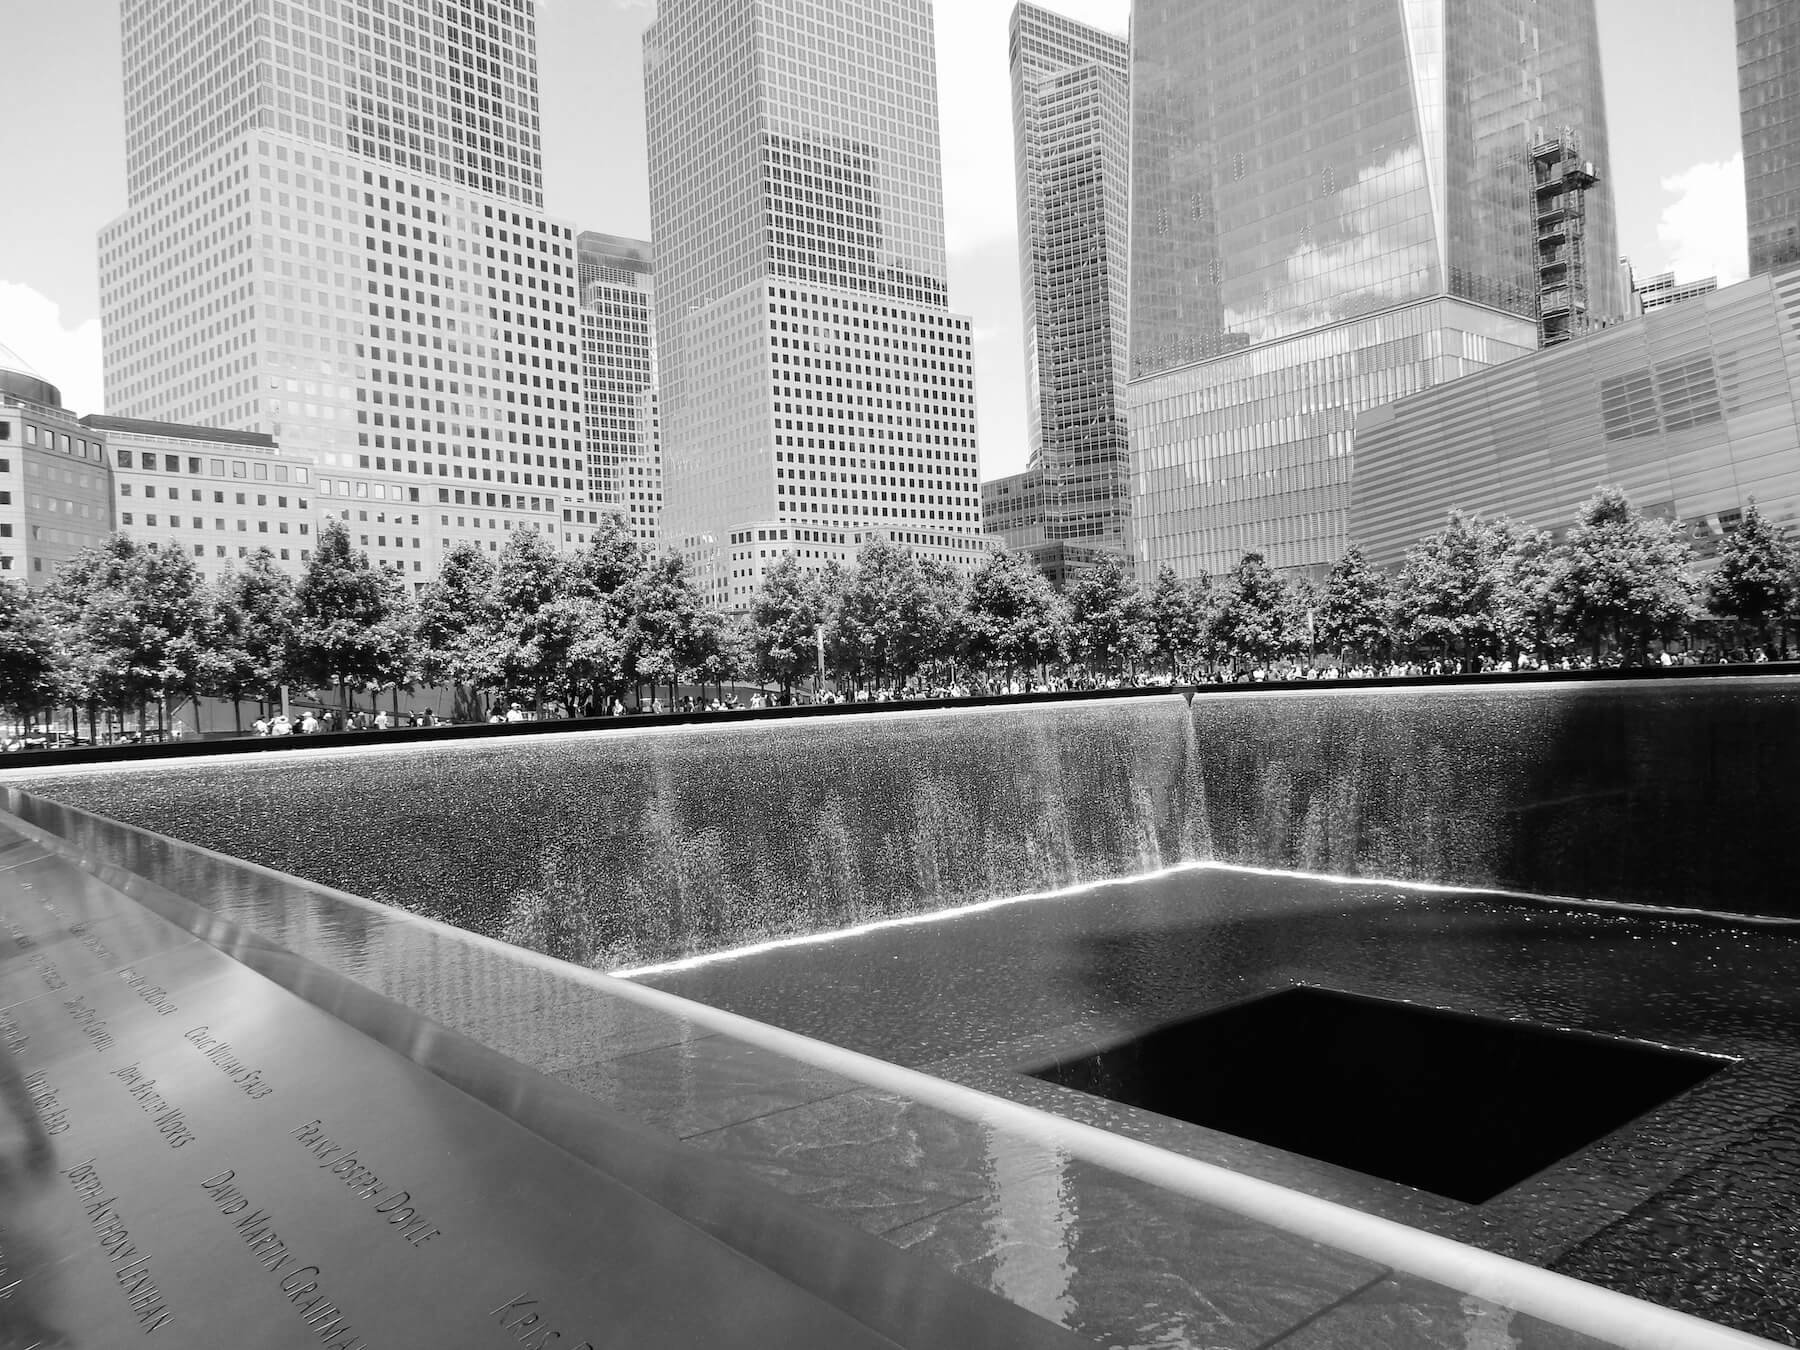 Black and white 9/11 Memorial, etched names